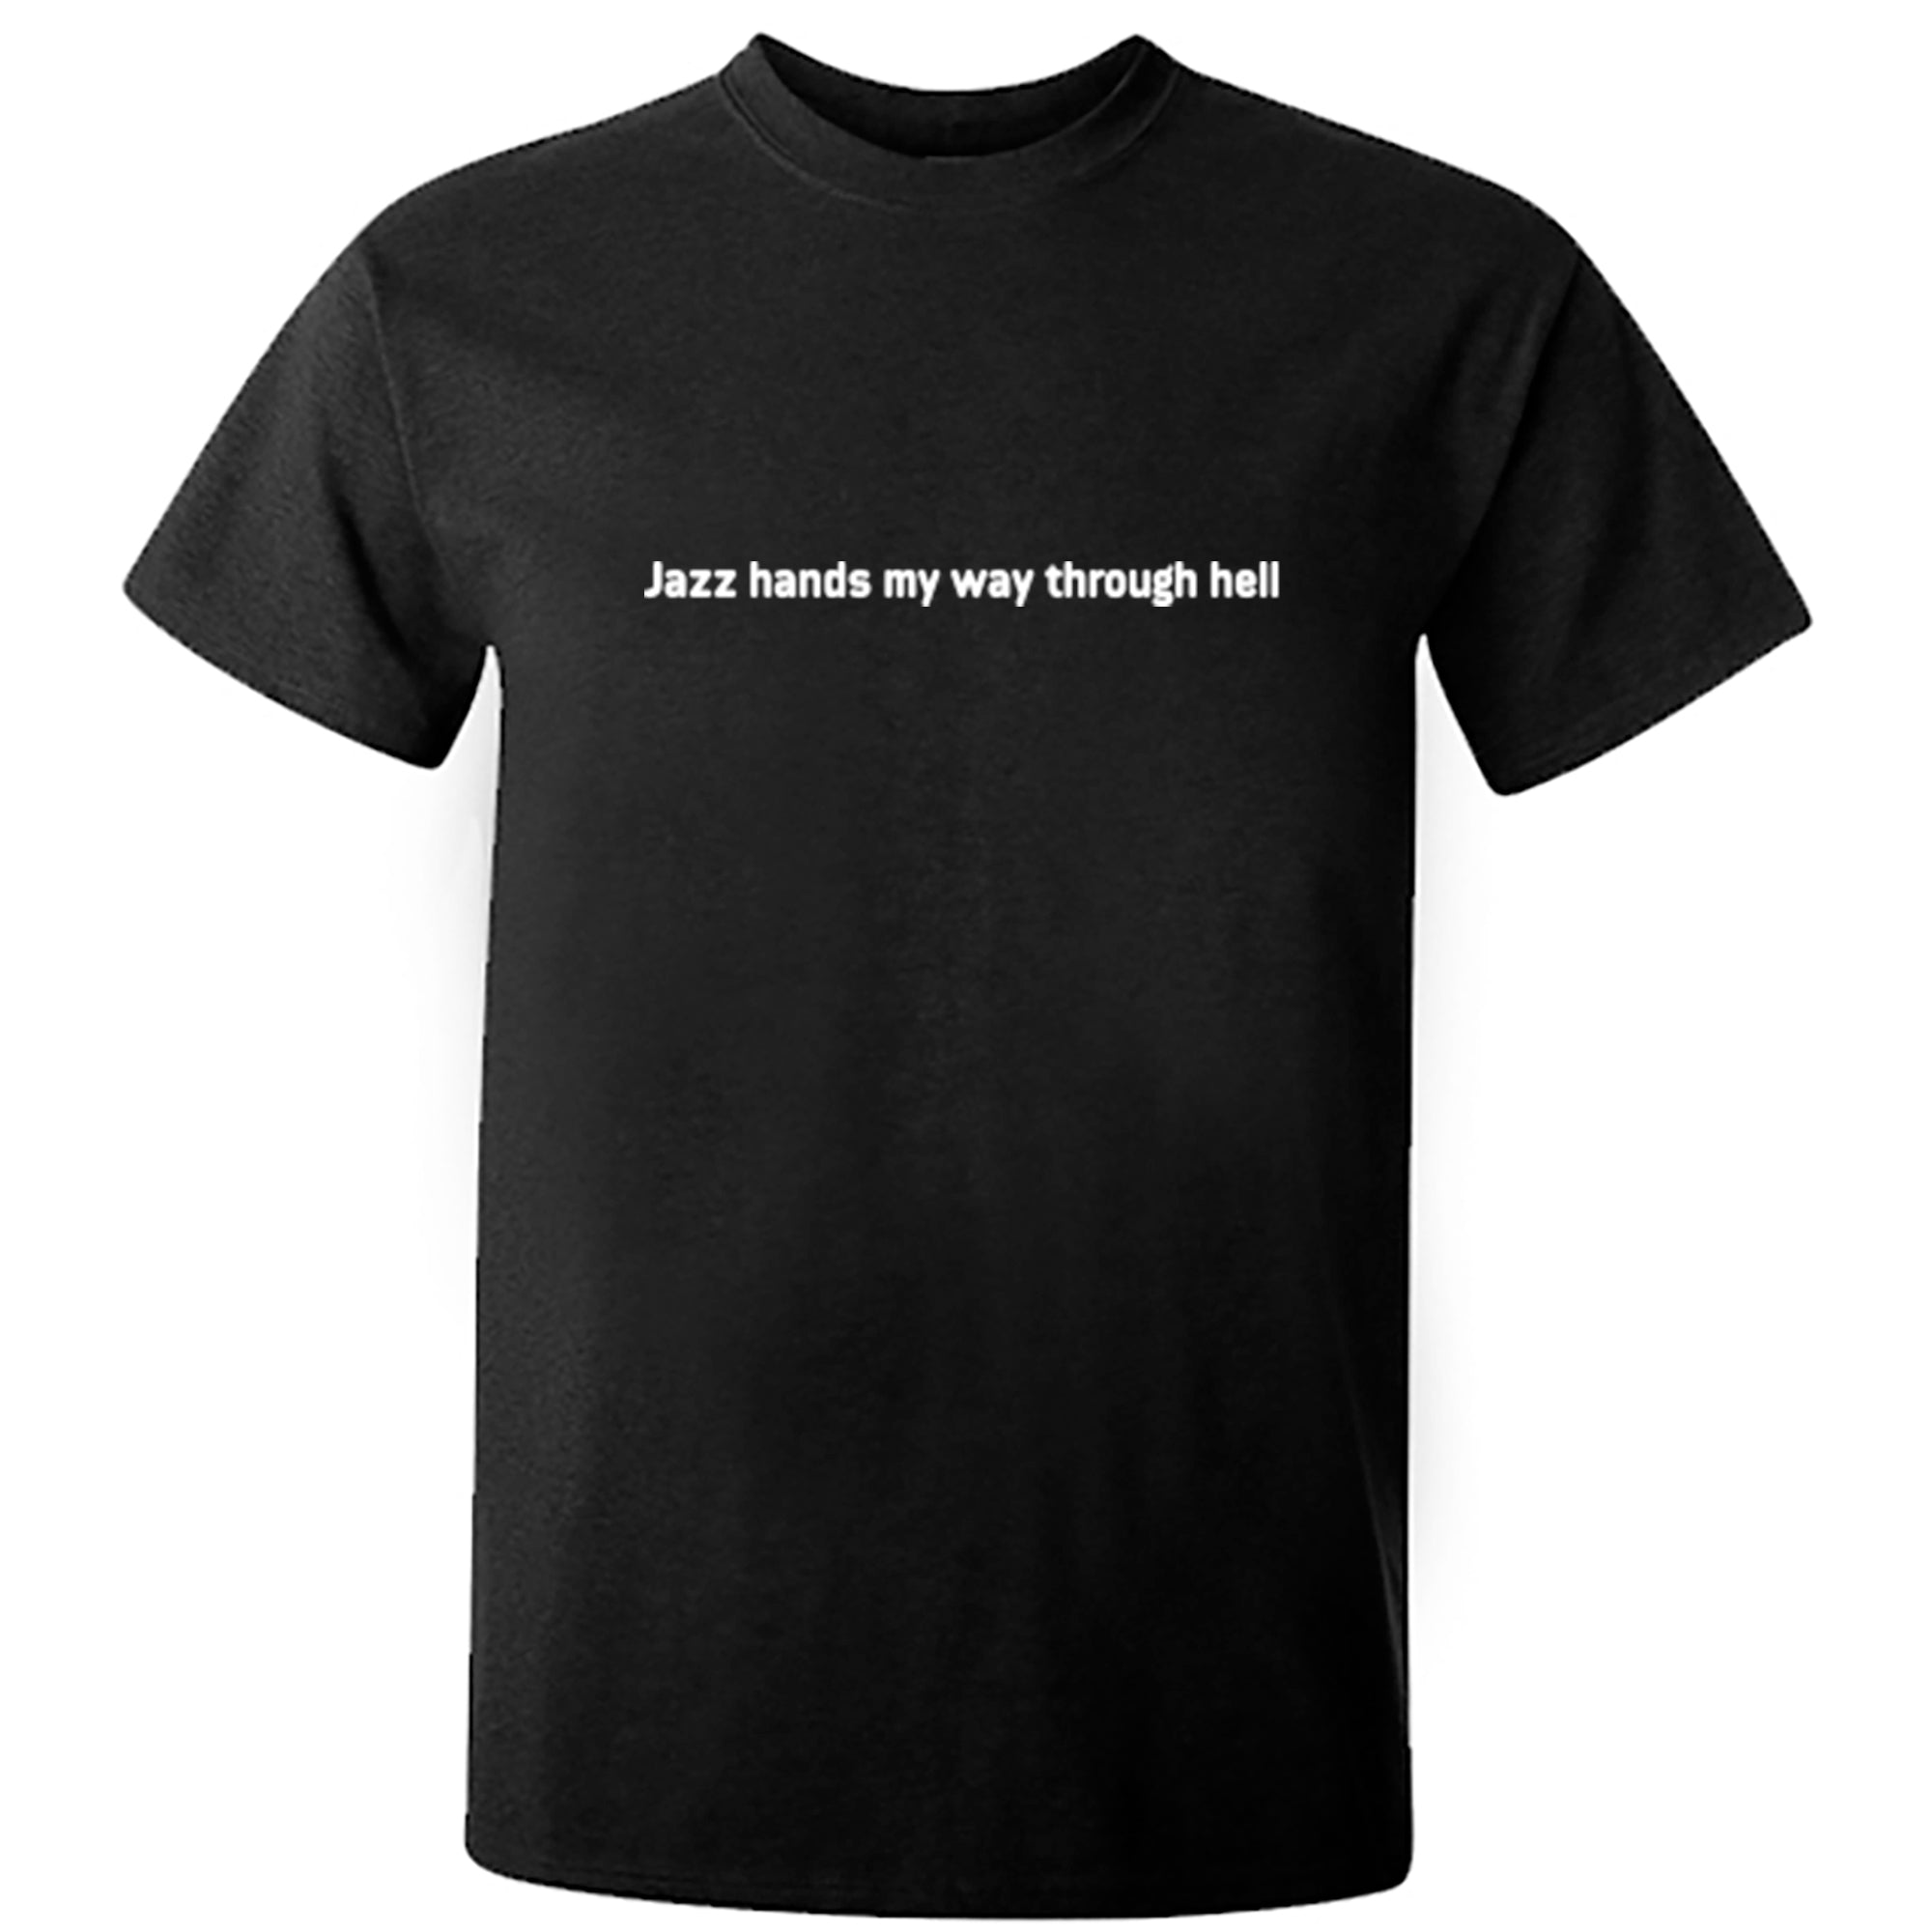 Jazz Hands My Way Through Hell Unisex Fit T-Shirt S1115 - Illustrated Identity Ltd.